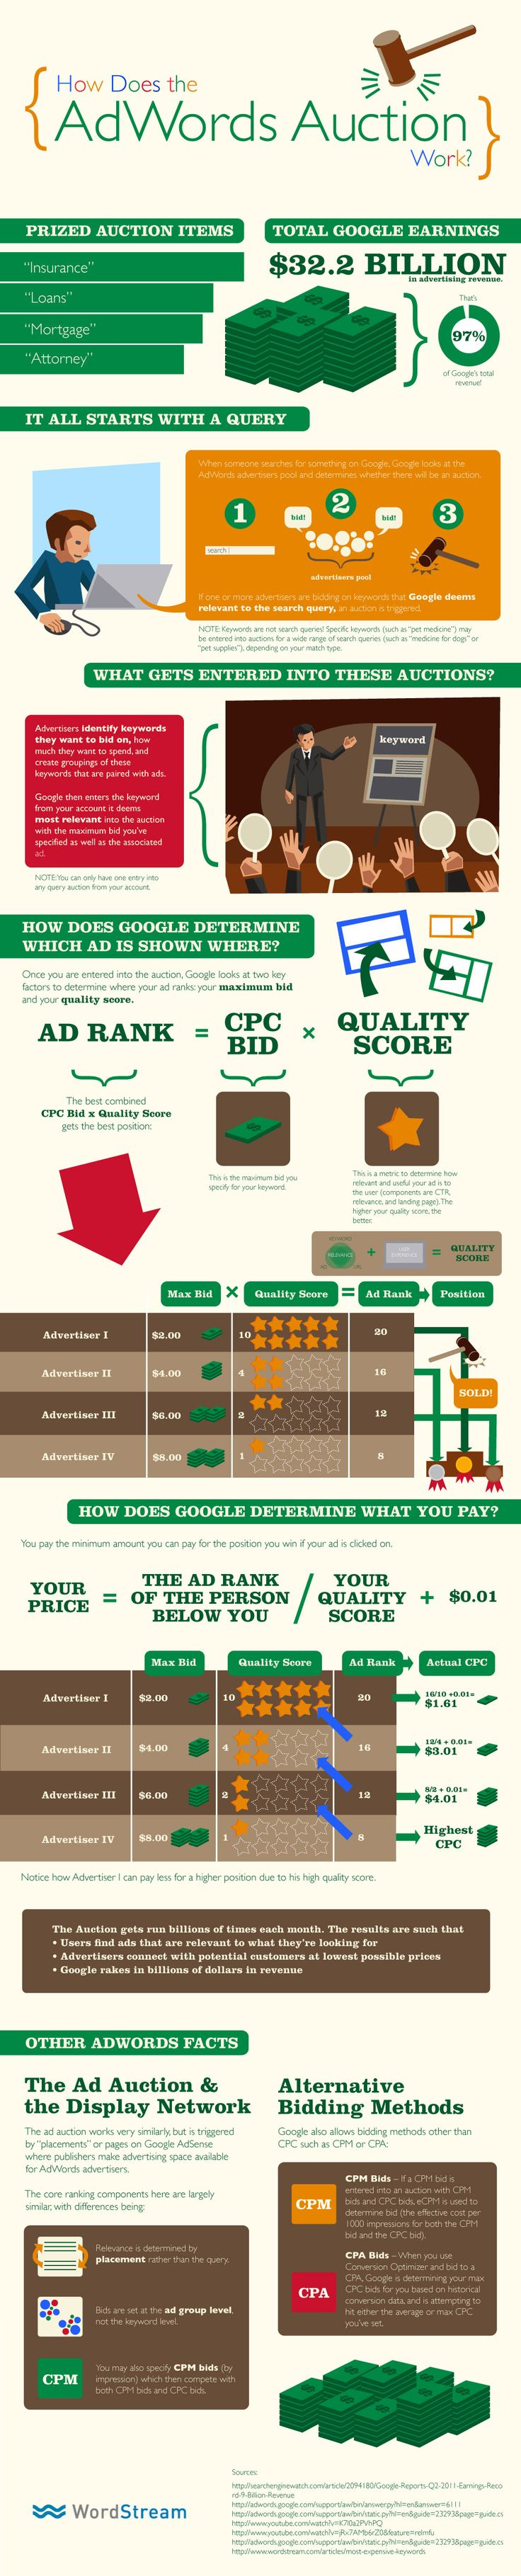 How Does the AdWords Auction work